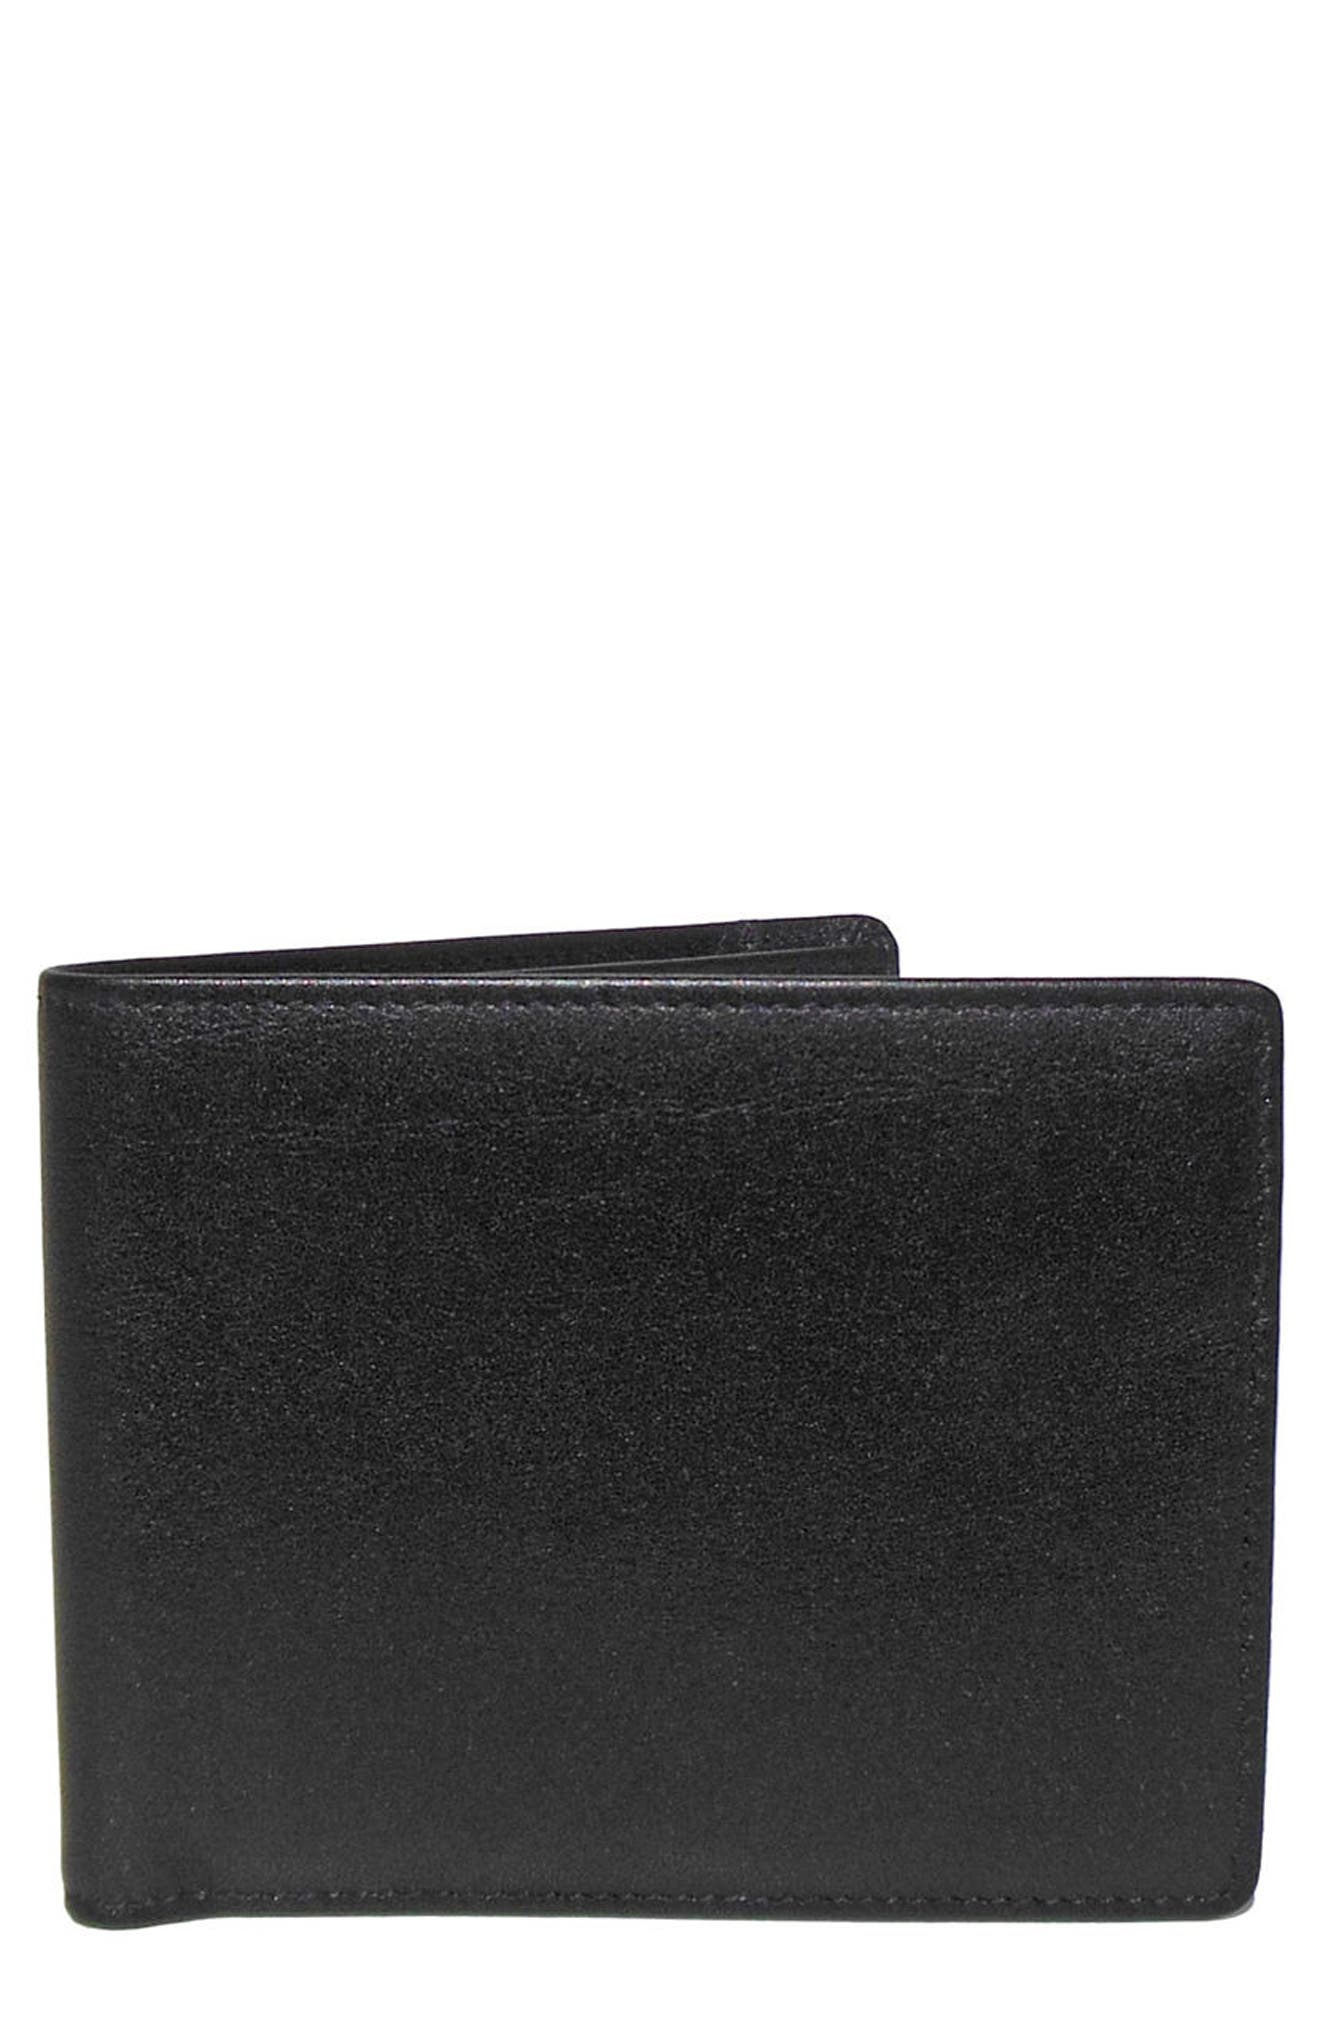 Grant Leather Wallet,                         Main,                         color, Black